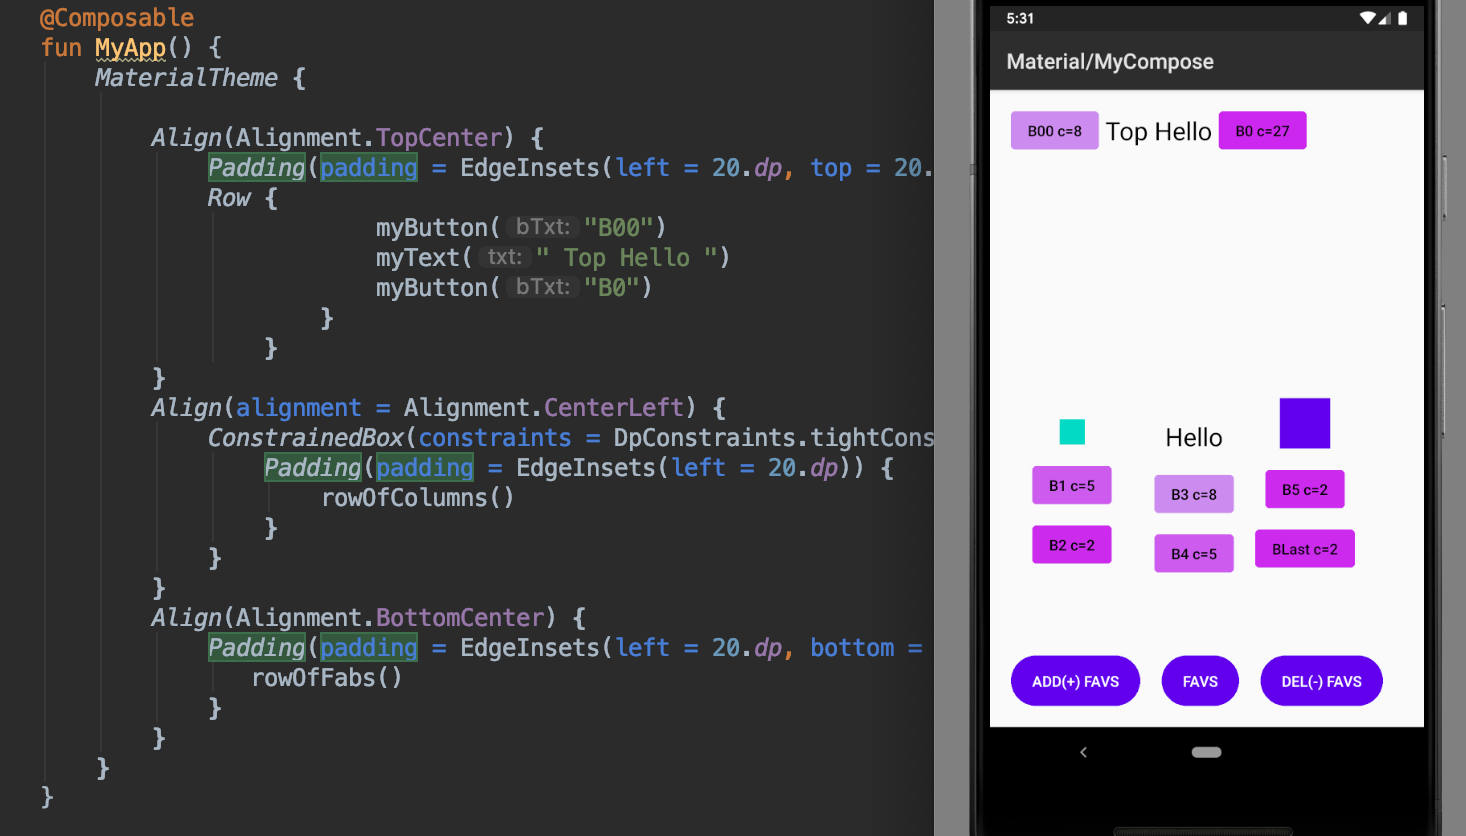 Jetpack Compose UI (part 3of3) - AndroidPub